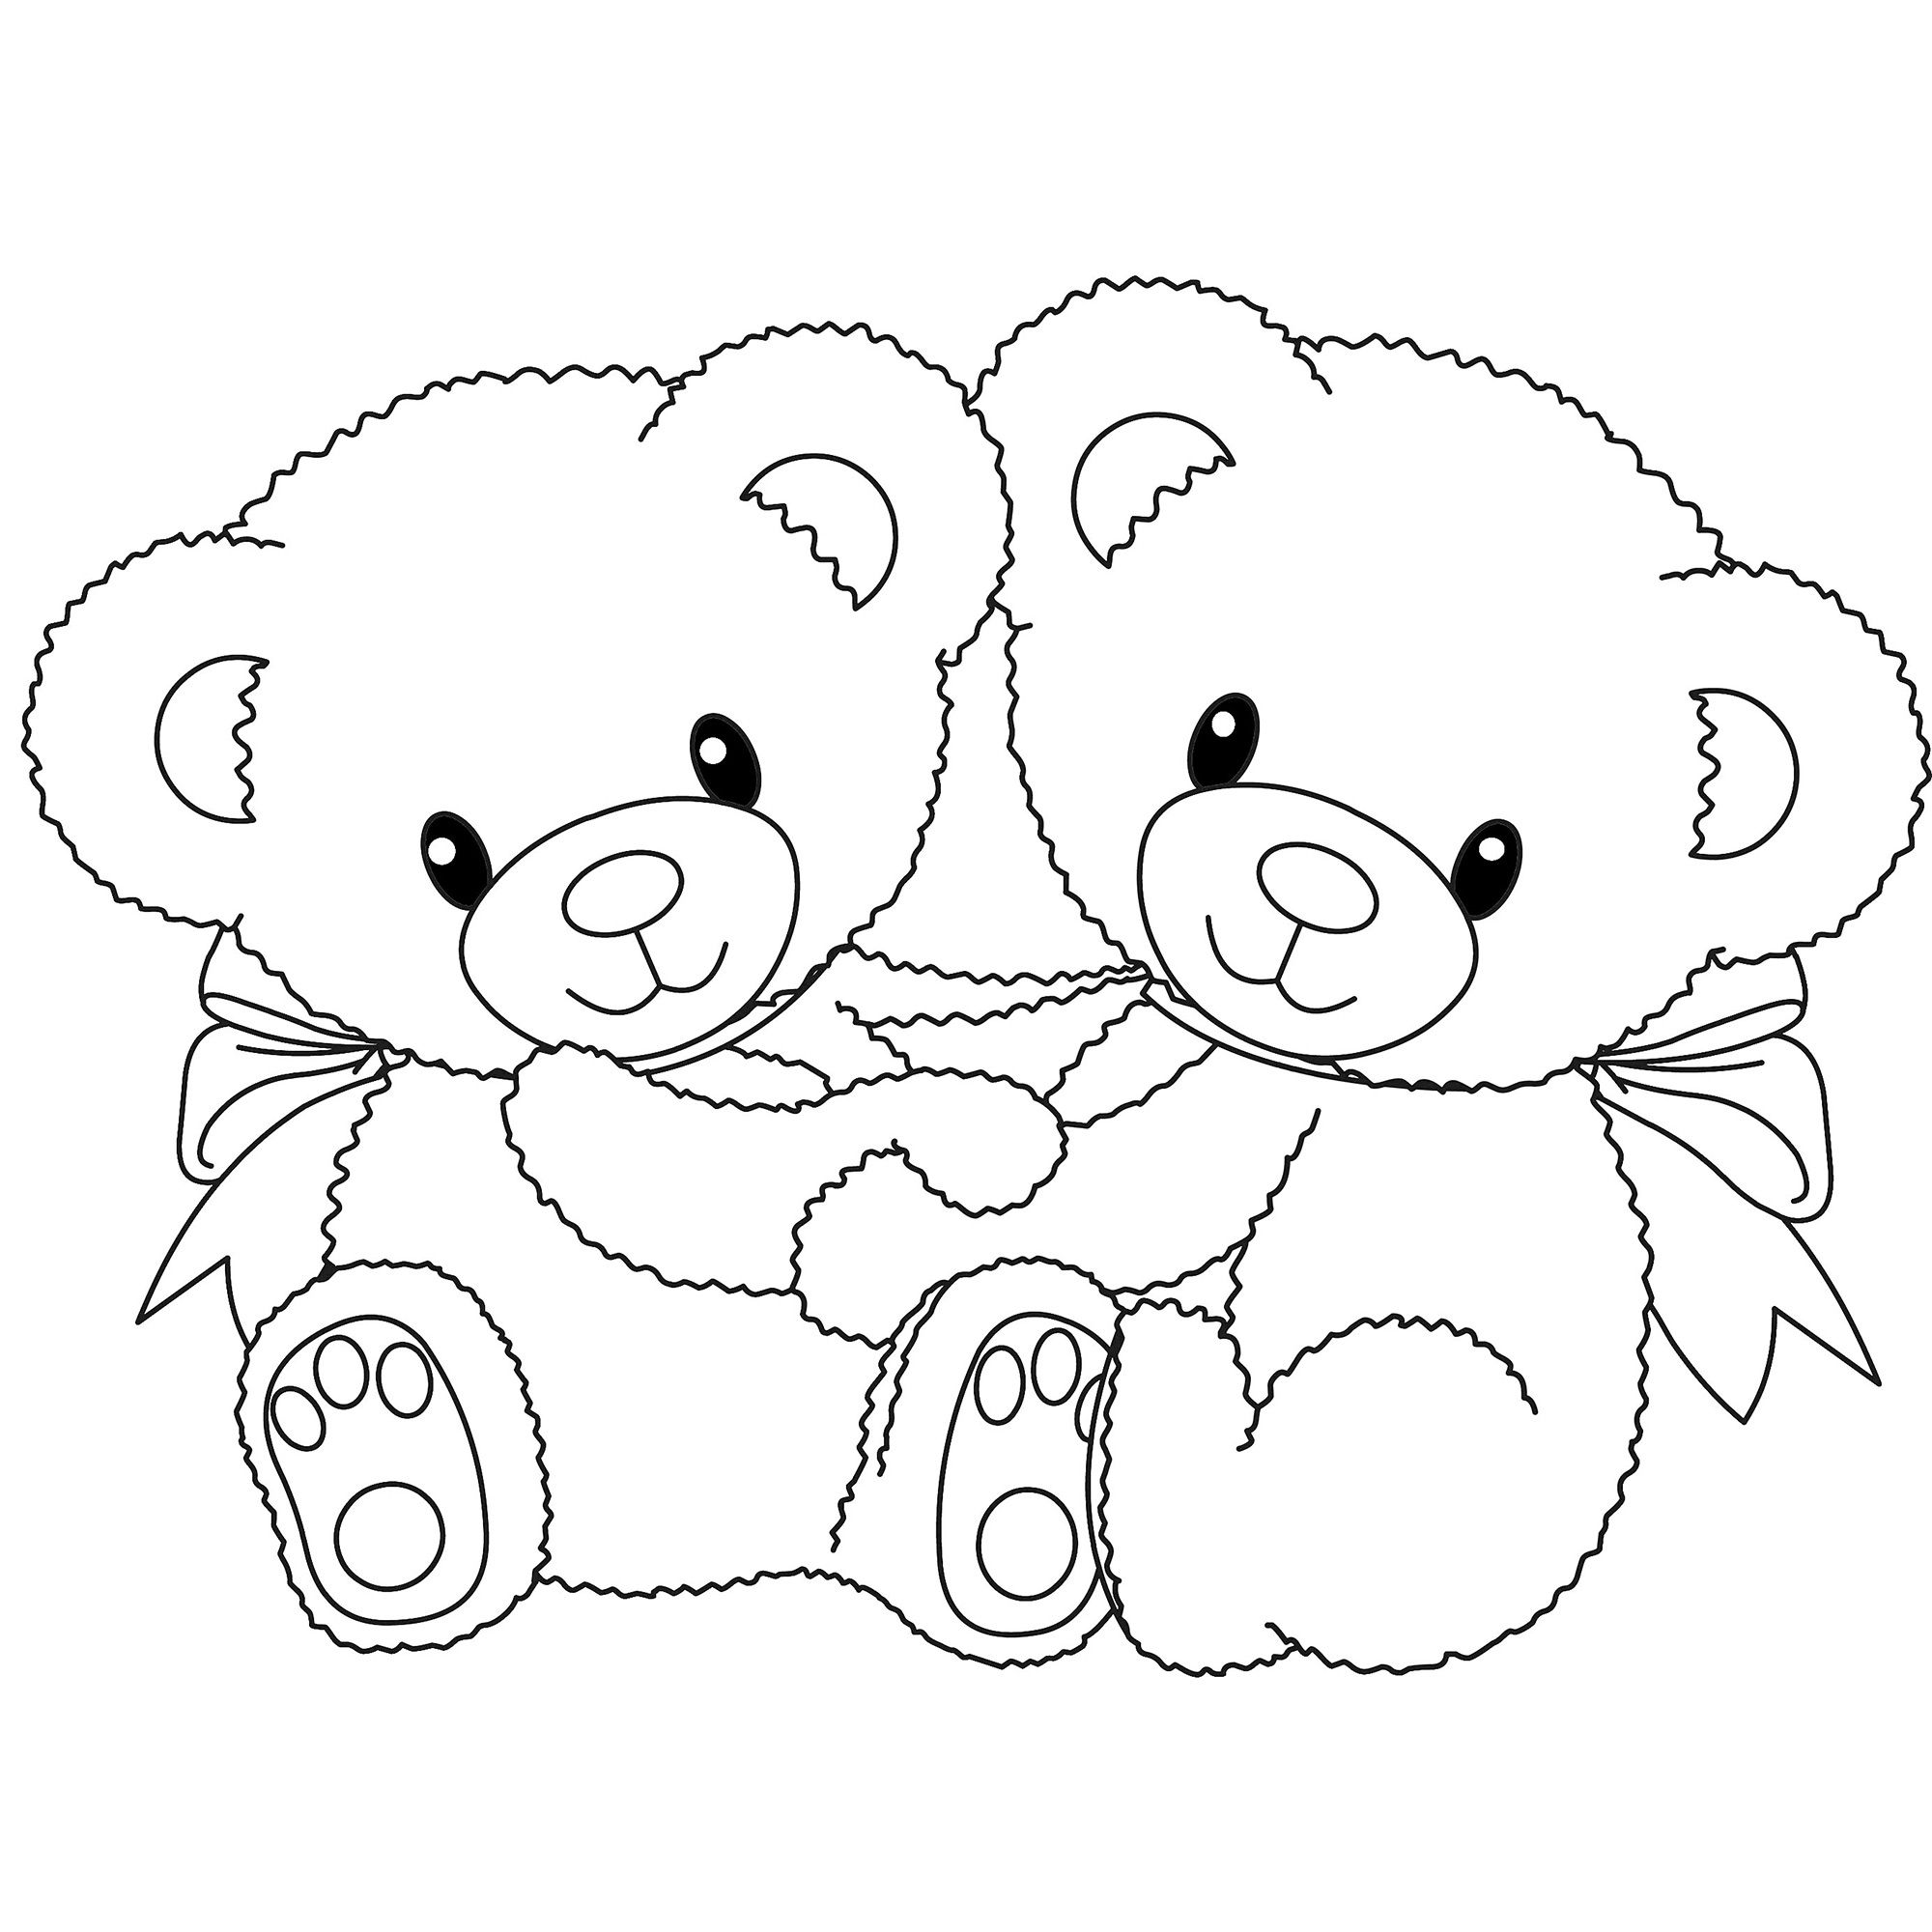 Teddy Bear Coloring Pages Games Coloringwallpaper Com Teddy Bear Coloring Pages Polar Bear Coloring Page Bear Coloring Pages